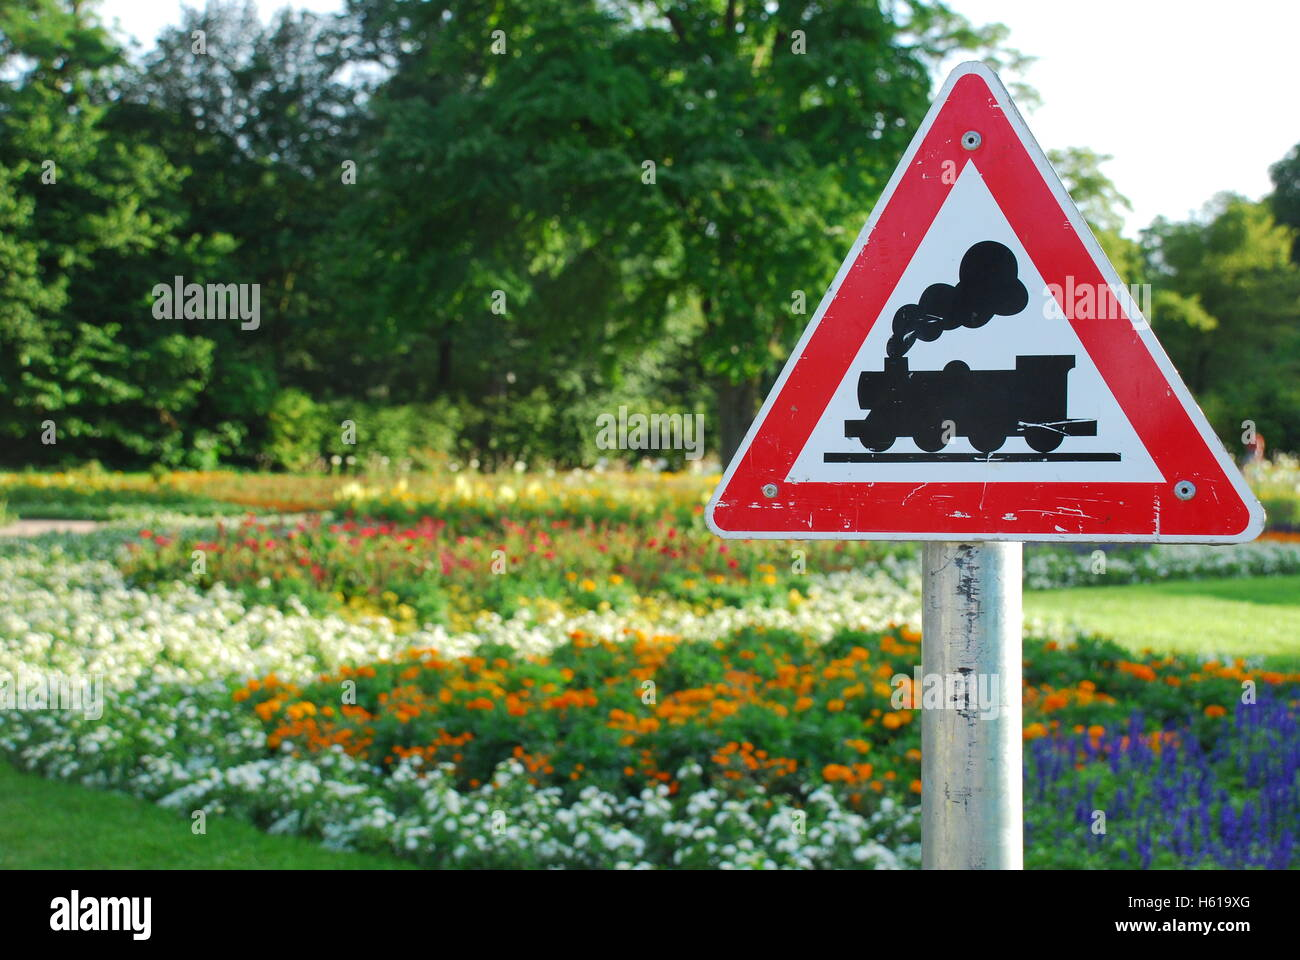 Attention, railway crossing: miniature narrow-gauge railway Hoehenpark Killesberg Stuttgart Baden Wuerttemberg Germany - Stock Image